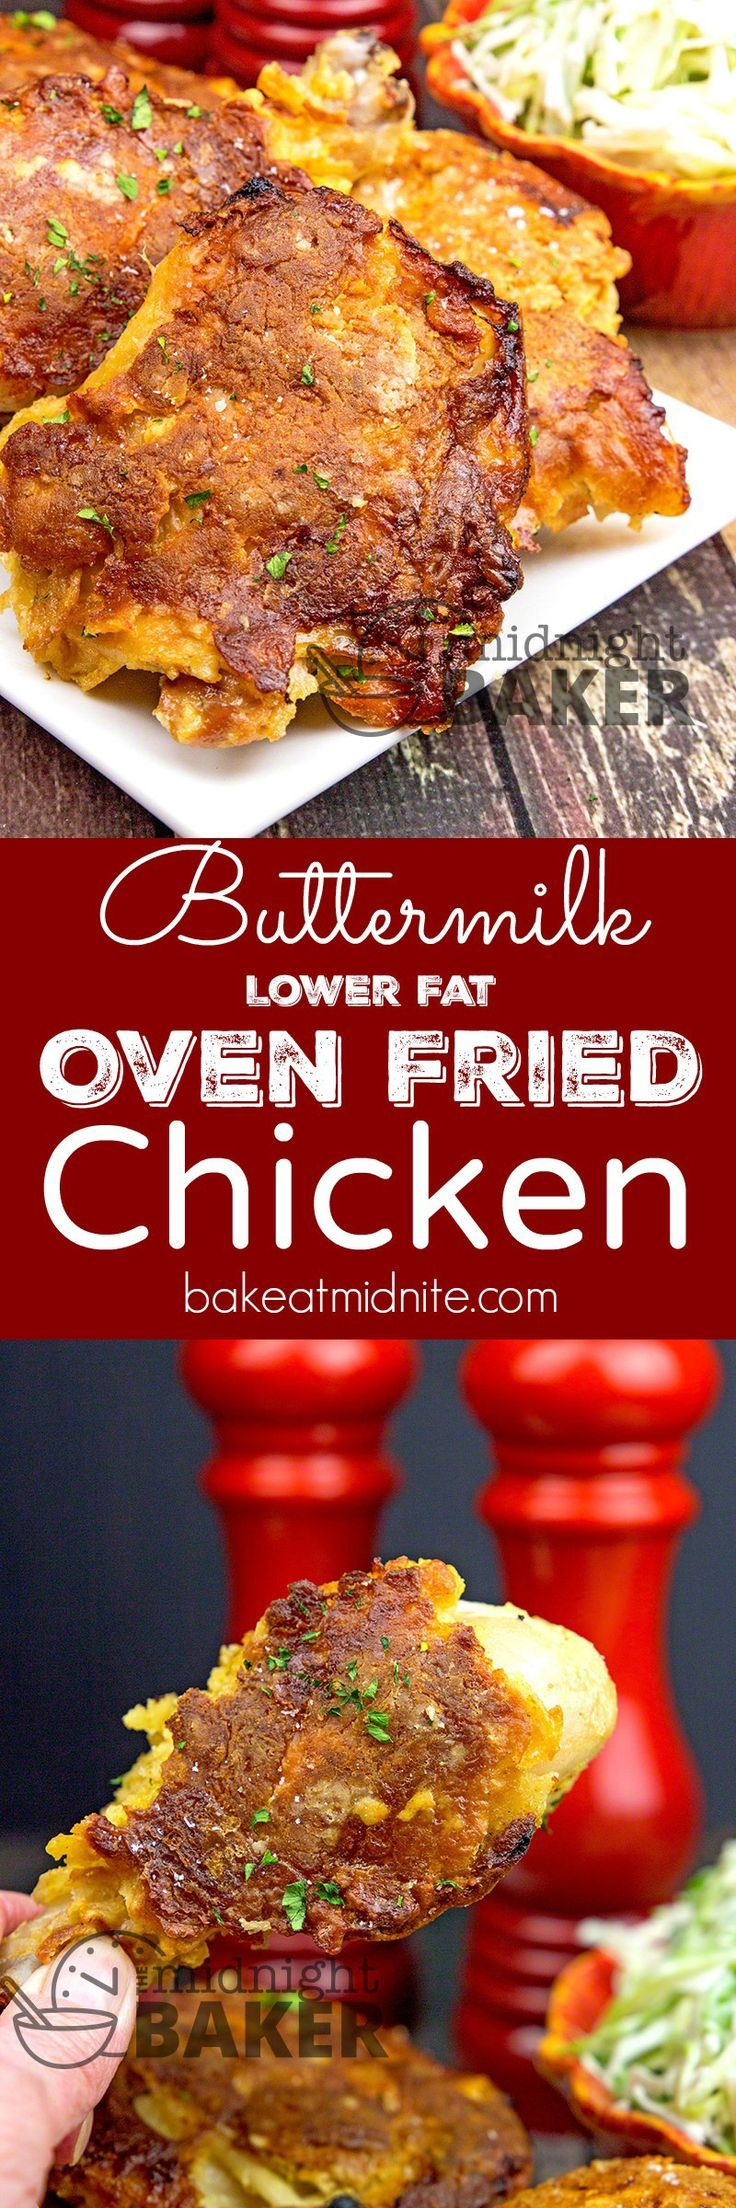 4353 Best Easy Skillet Dinners Images On Pinterest  Cook -1331